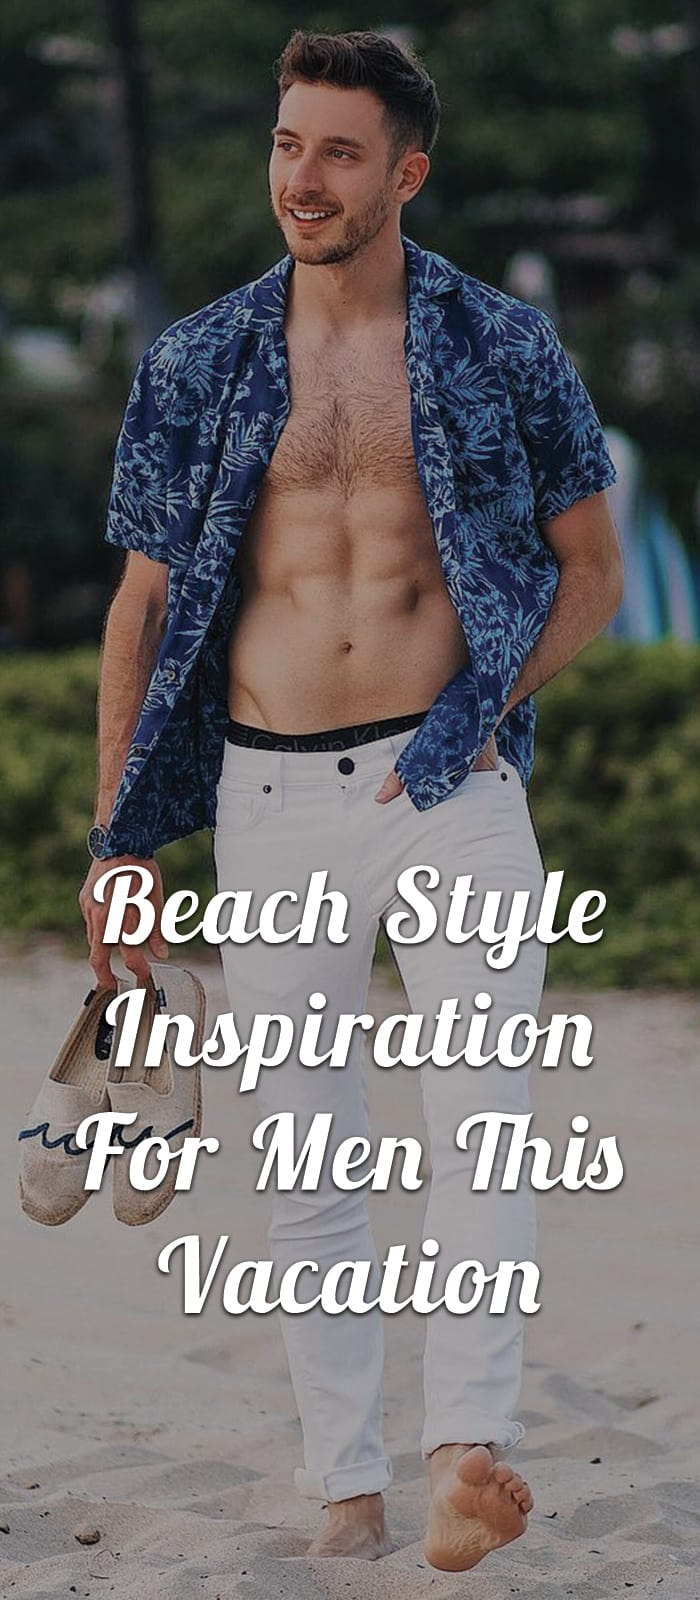 Beach-Style-Inspiration-For-Men-This-Vacation